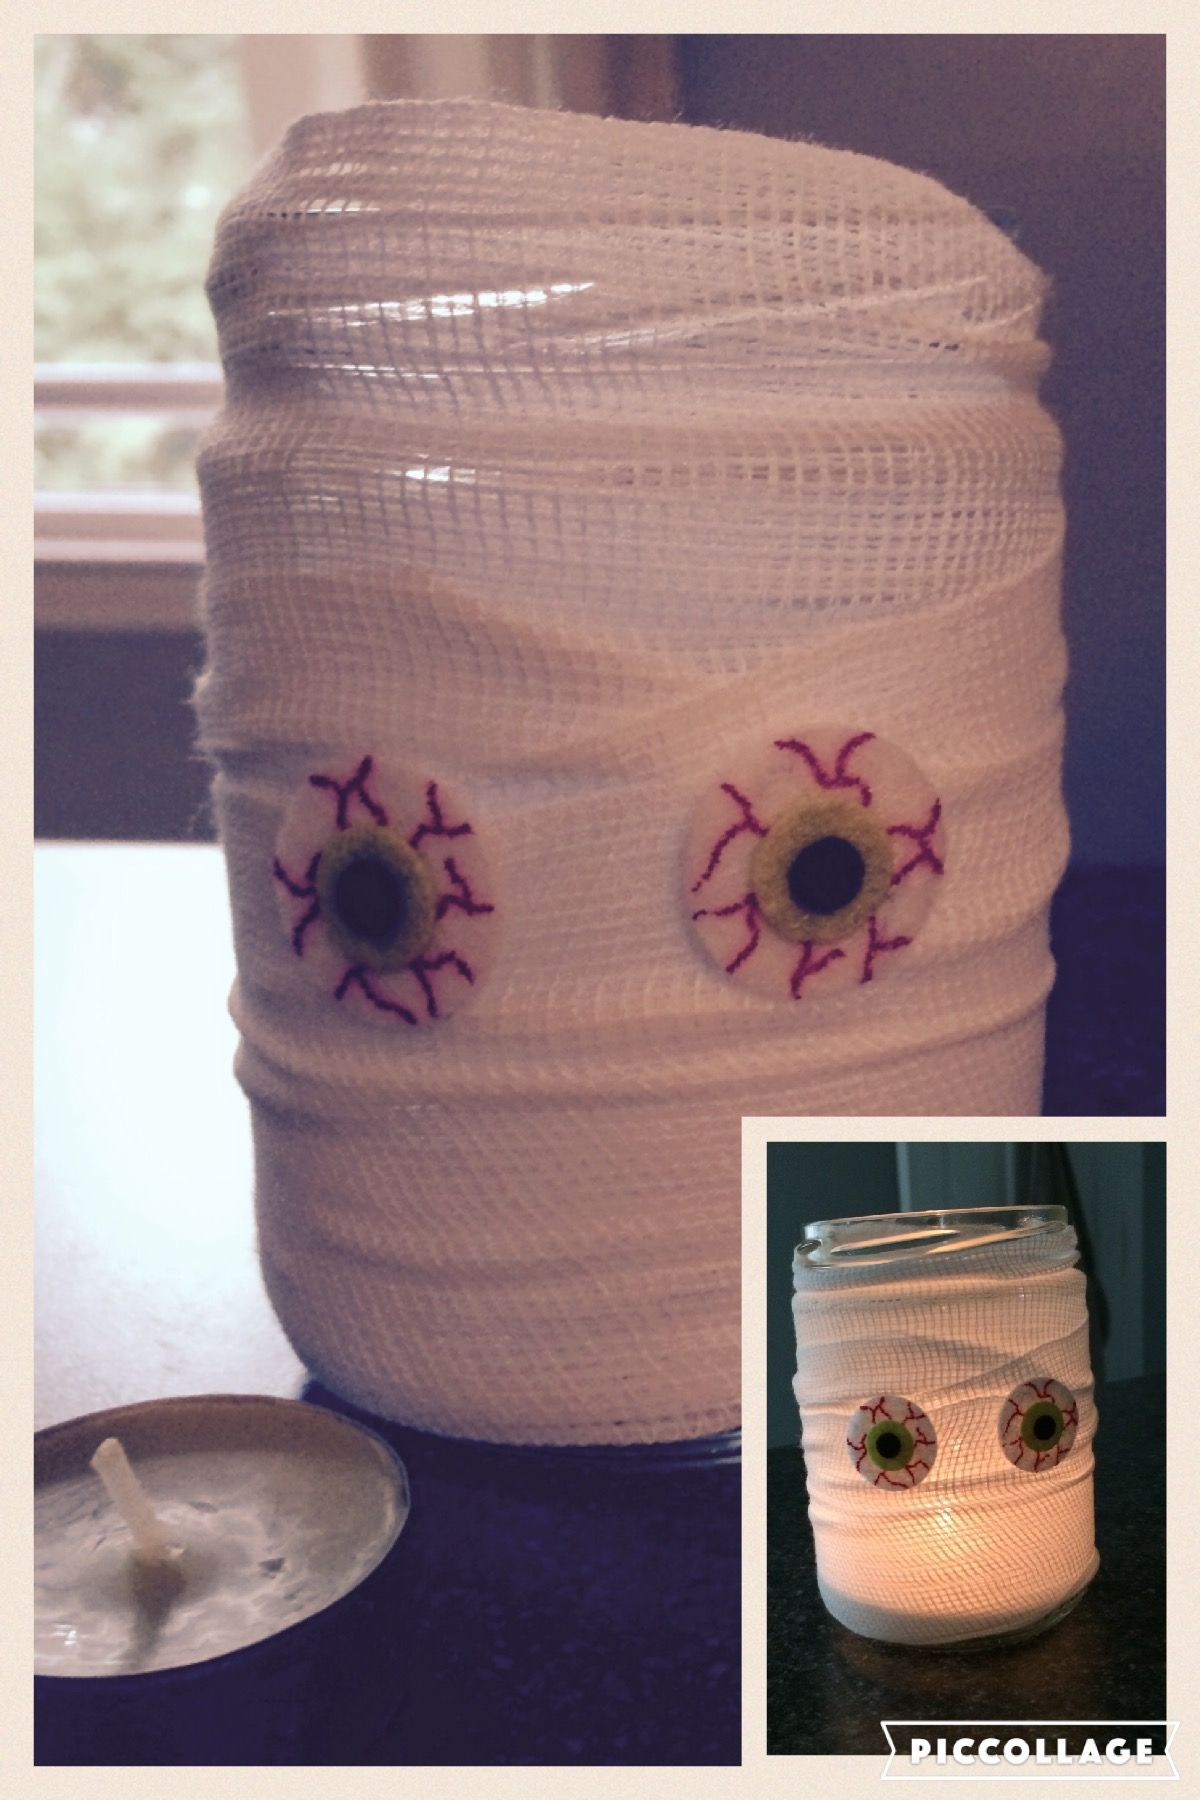 We did this at work today - Halloween #craft - super easy! #DIY    Supplies  -Mason jar or glass jar  -gauze  -glue  -eyeball stickers     Wrap gauze around jar and glue ends. Stick on eyes. light candle and your done!